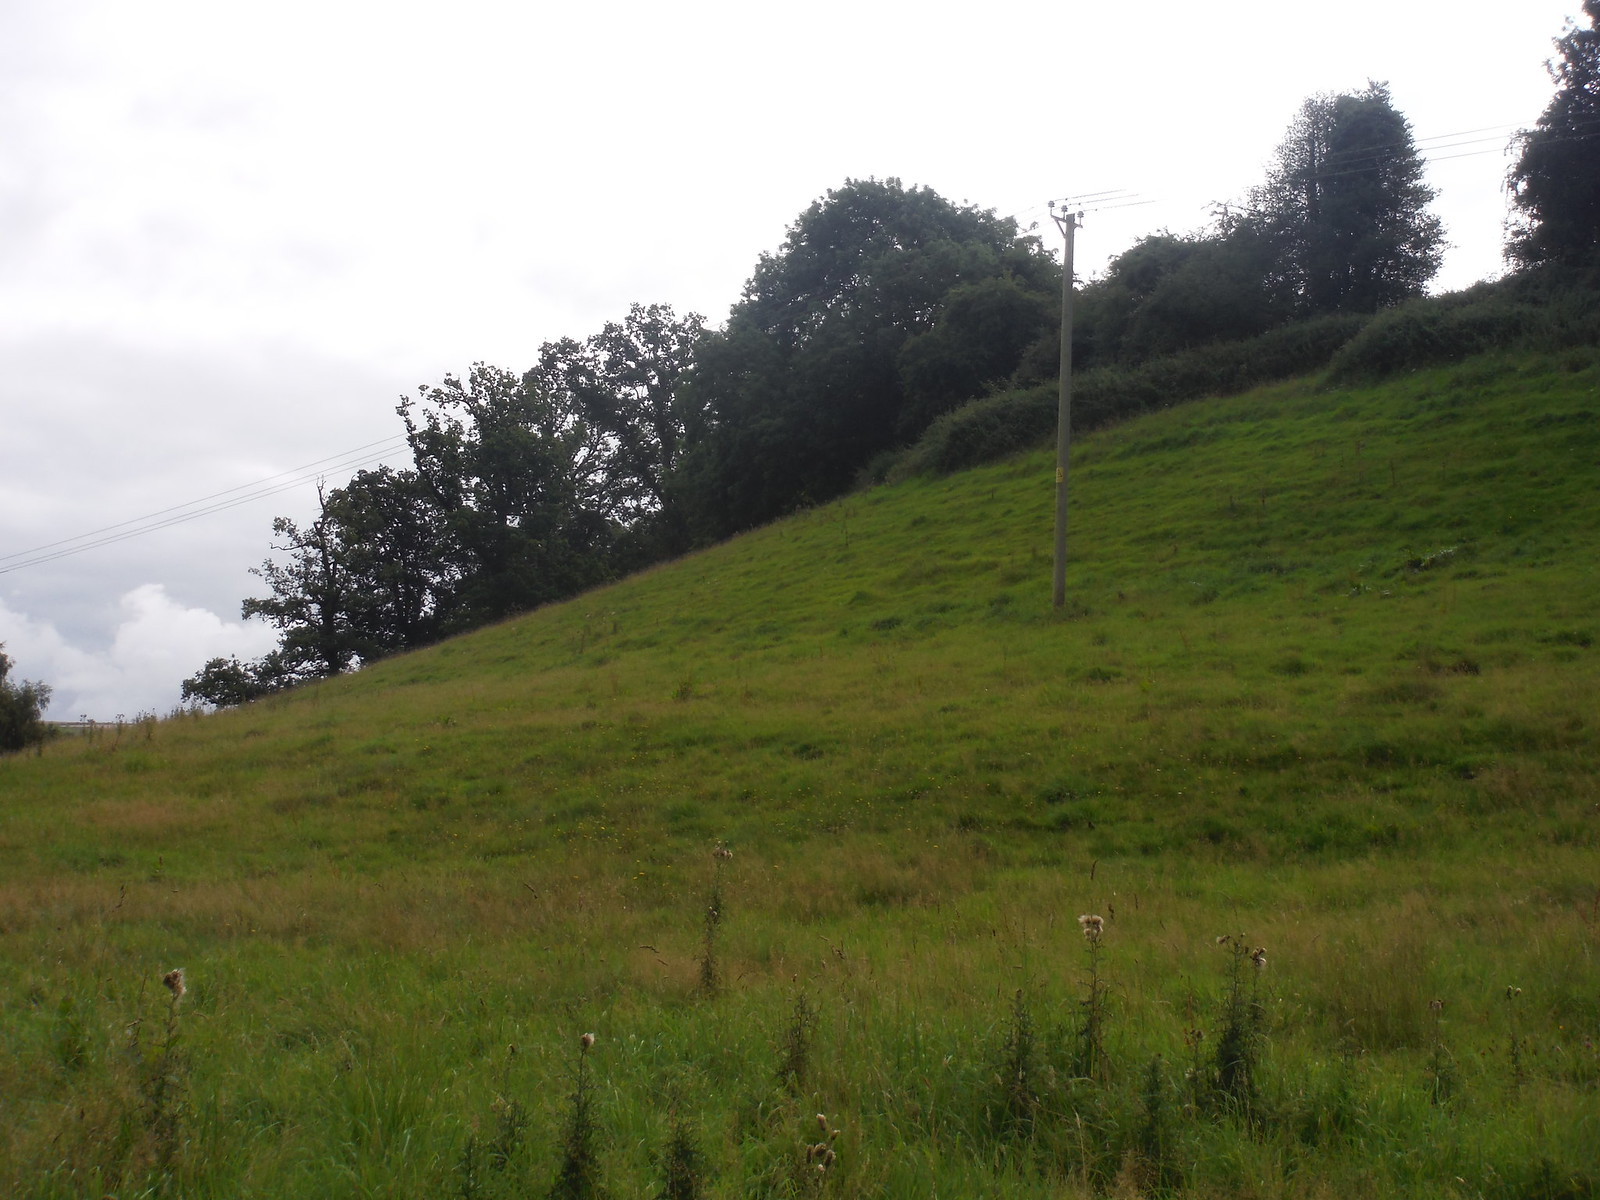 '...to the upper far end of the steep slope...' SWC Walk 250 Tisbury Circular via Alvediston